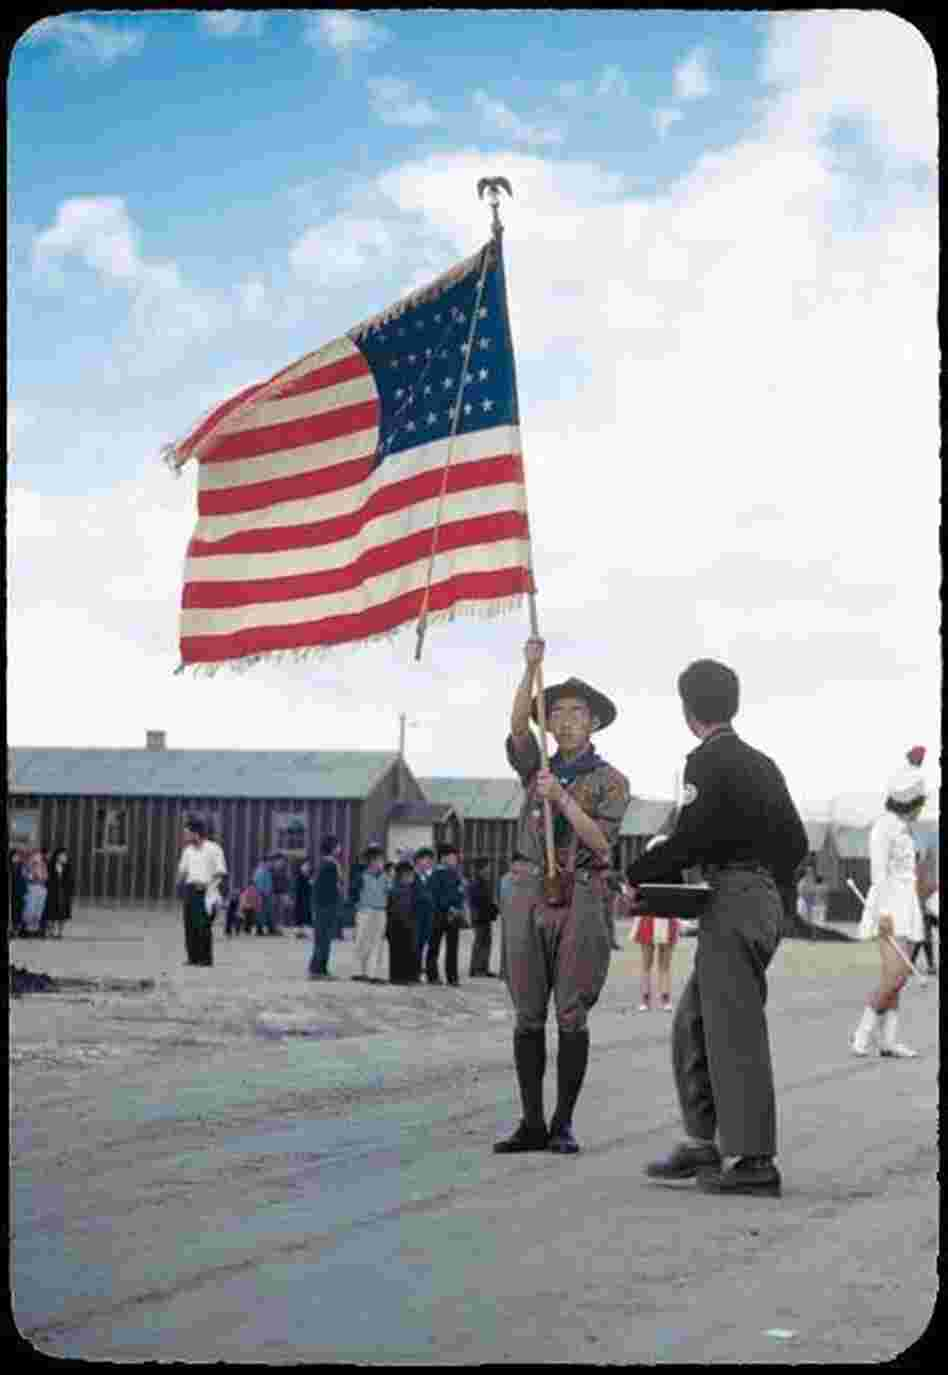 A Boy Scout carrying an American flag leads a parade through the Heart Mountain camp.